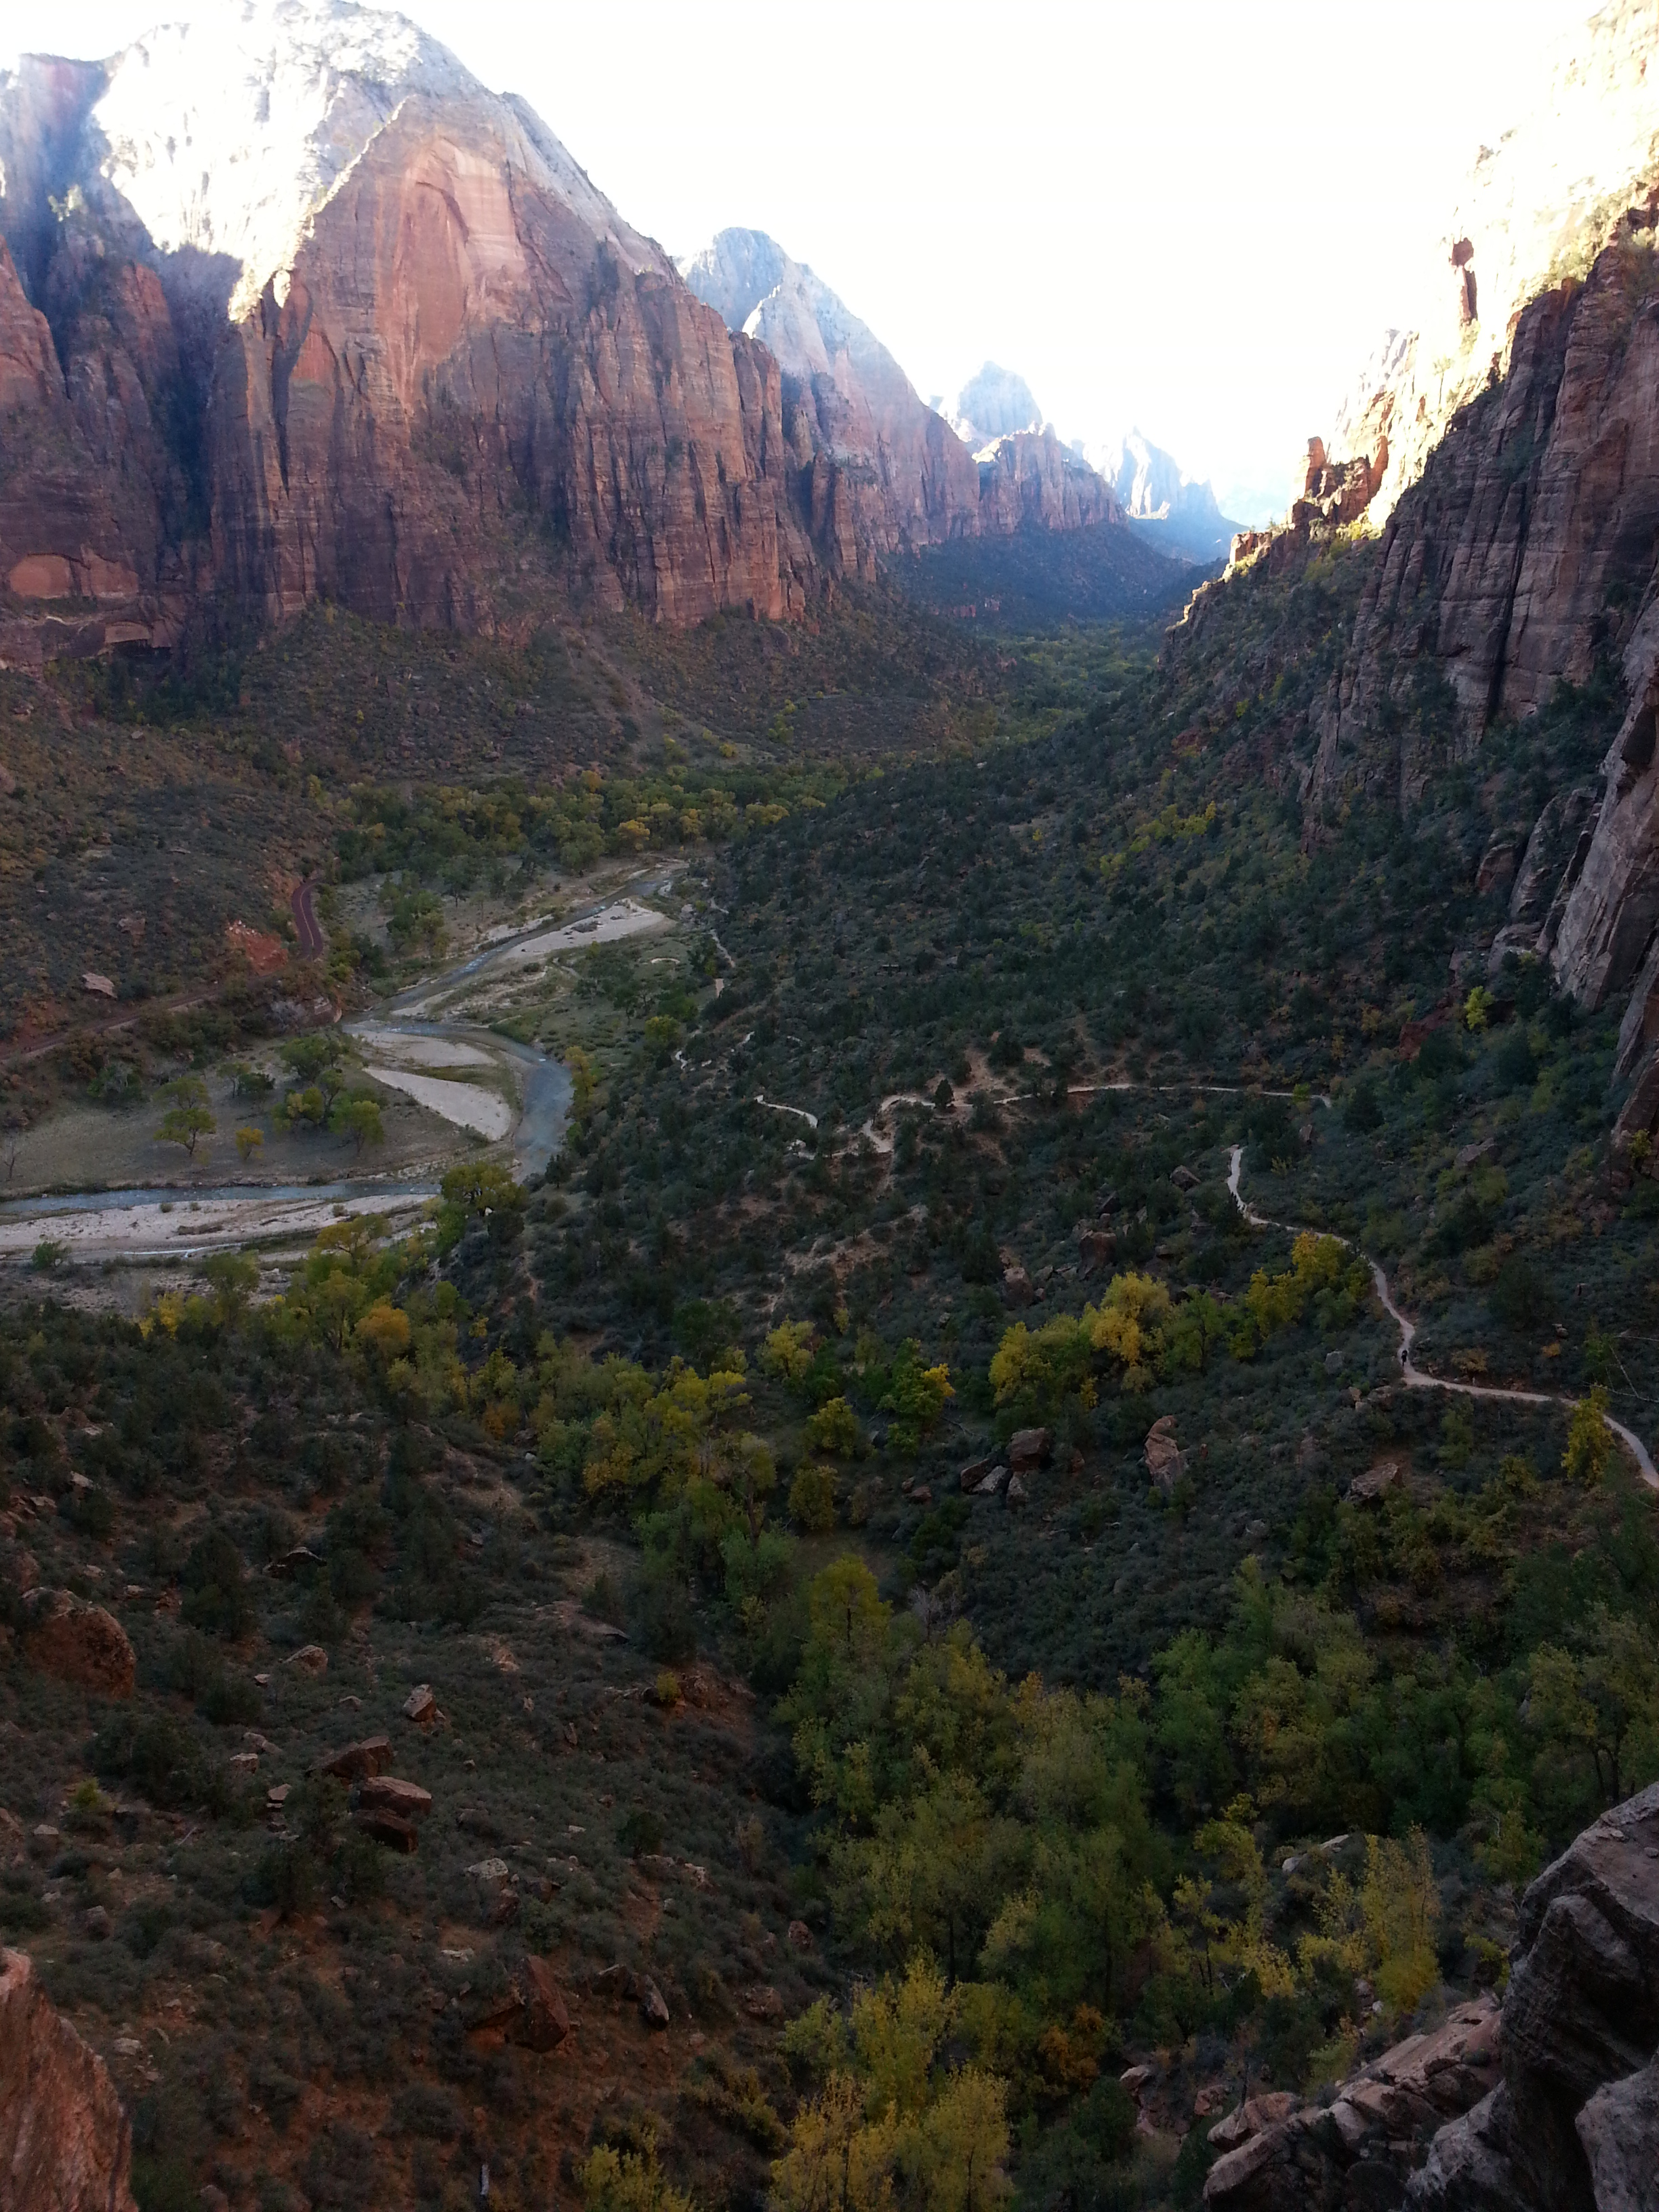 The view of the trail and canyon before the sun rose